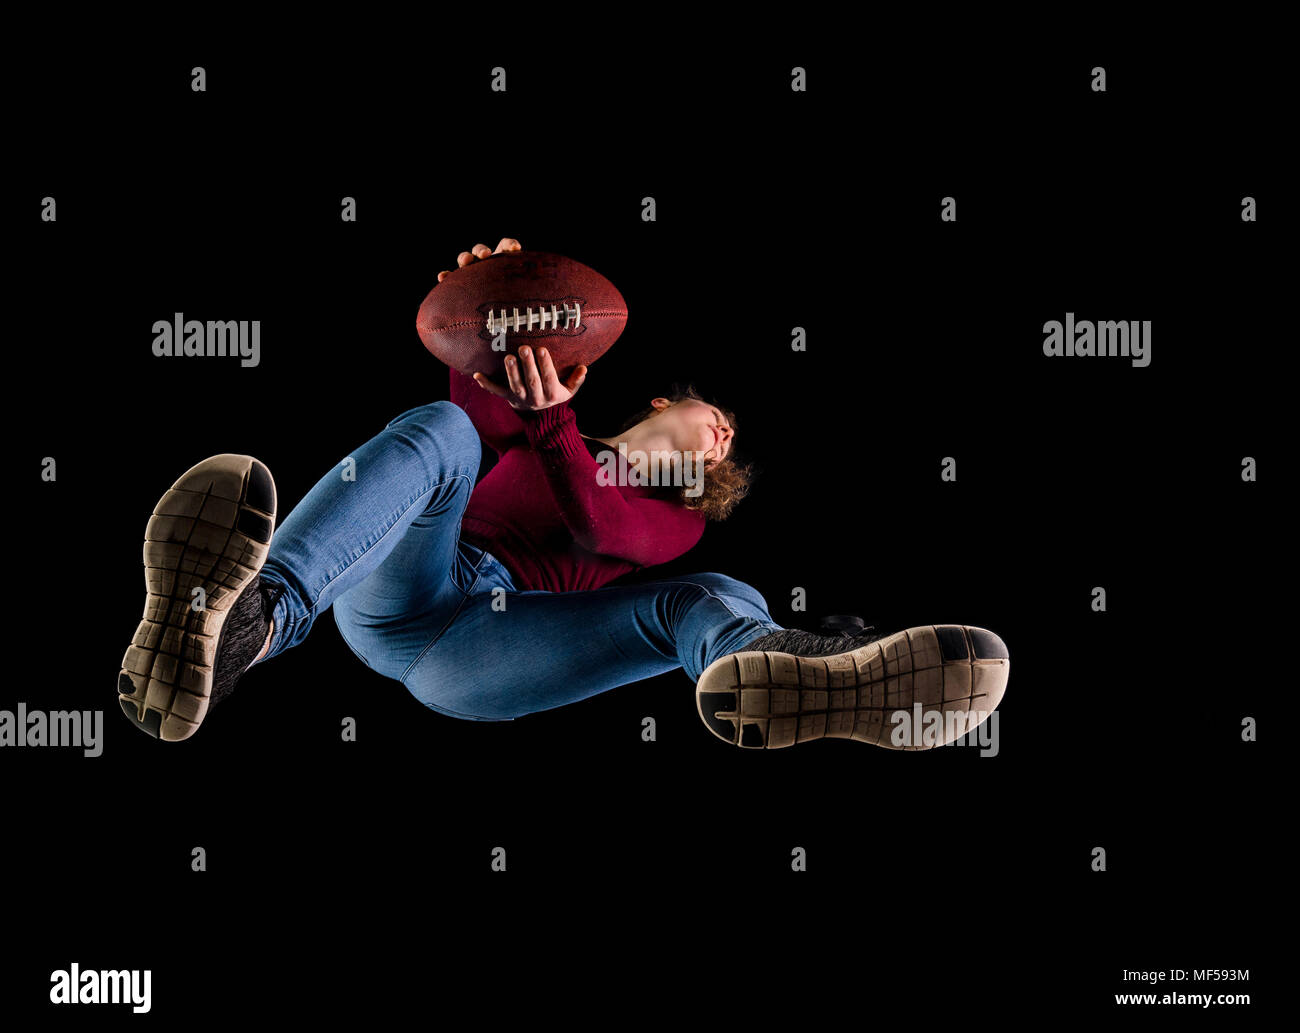 Rugby player against black background seen from below - Stock Image